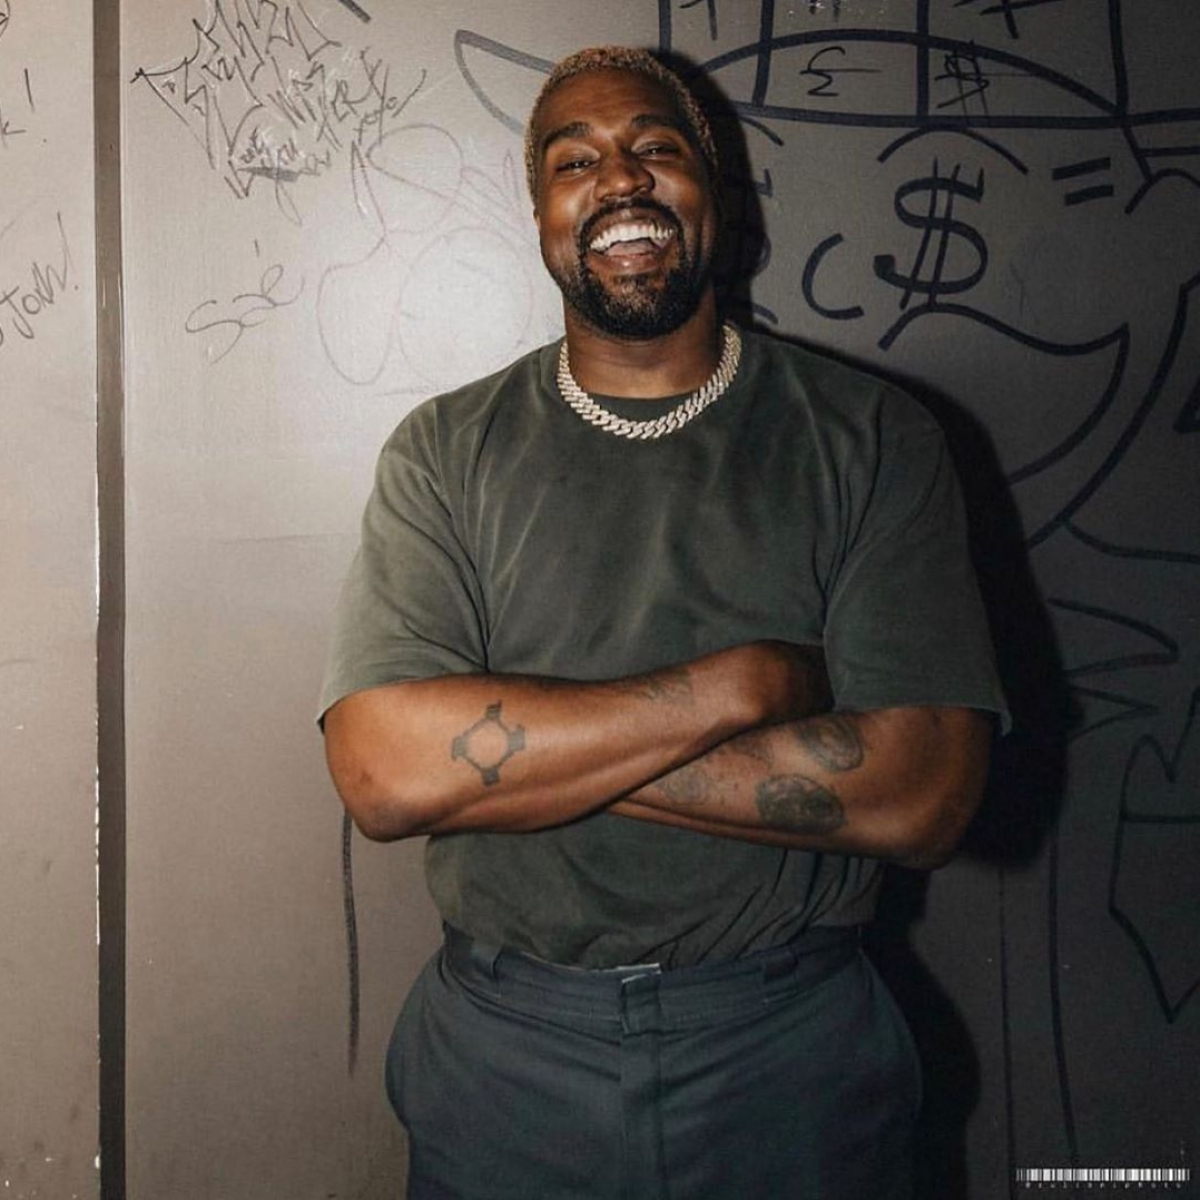 Kanye West for President? Rapper is 'speaking with experts'; plans to run under banner of 'Birthday Party'